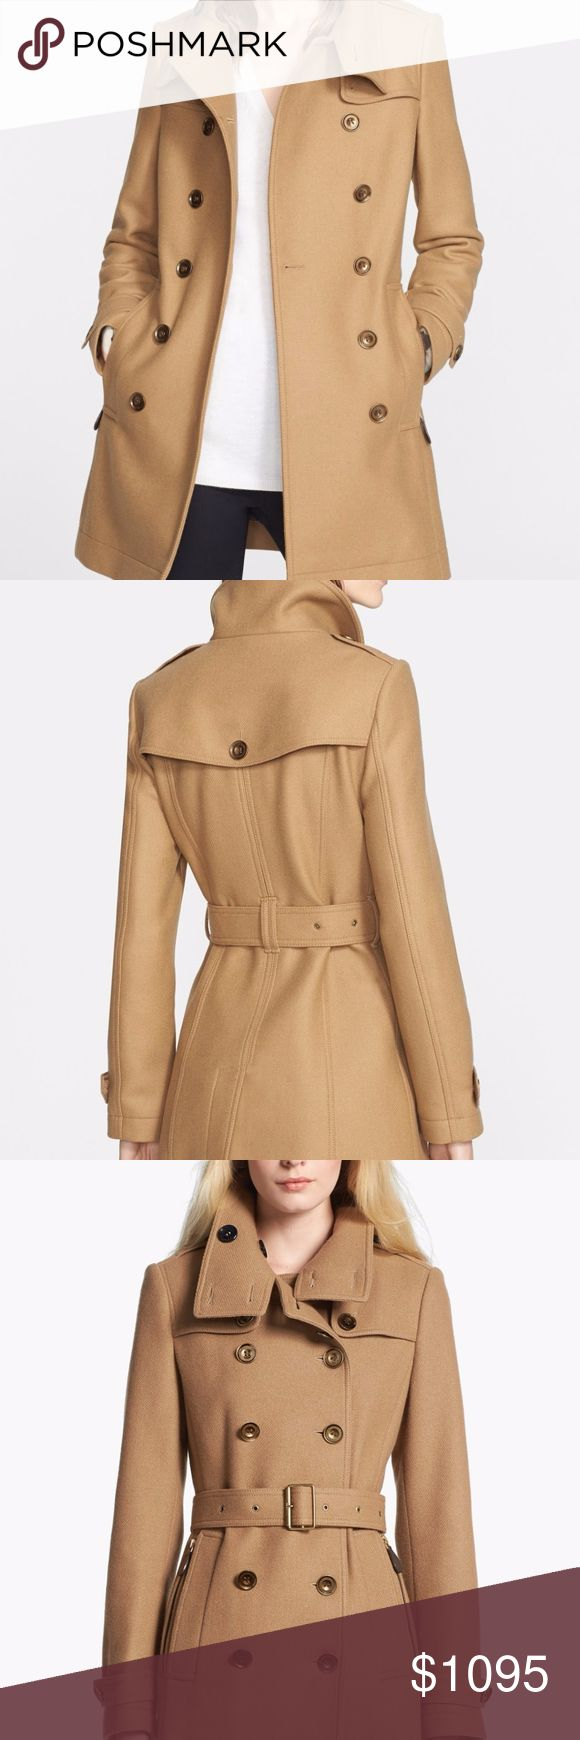 BURBERRY DAYLESMOORE SHORT DOUBLE WOOL TWILL COAT Includes Garment Bag/Proof of Purchase/Burberry Extra Buttons/Burberry Tags A cold-weather classic from Burberry, this wool-blend coat features an impeccably tailored double-breasted silhouette with a belt that cinches the waist for streamlined sophistication. Stand collar with button closure, button epaulettes Long sleeves with button tab cuffs, chest button gun flaps Double-breasted front button closure, front zip and flap pockets…